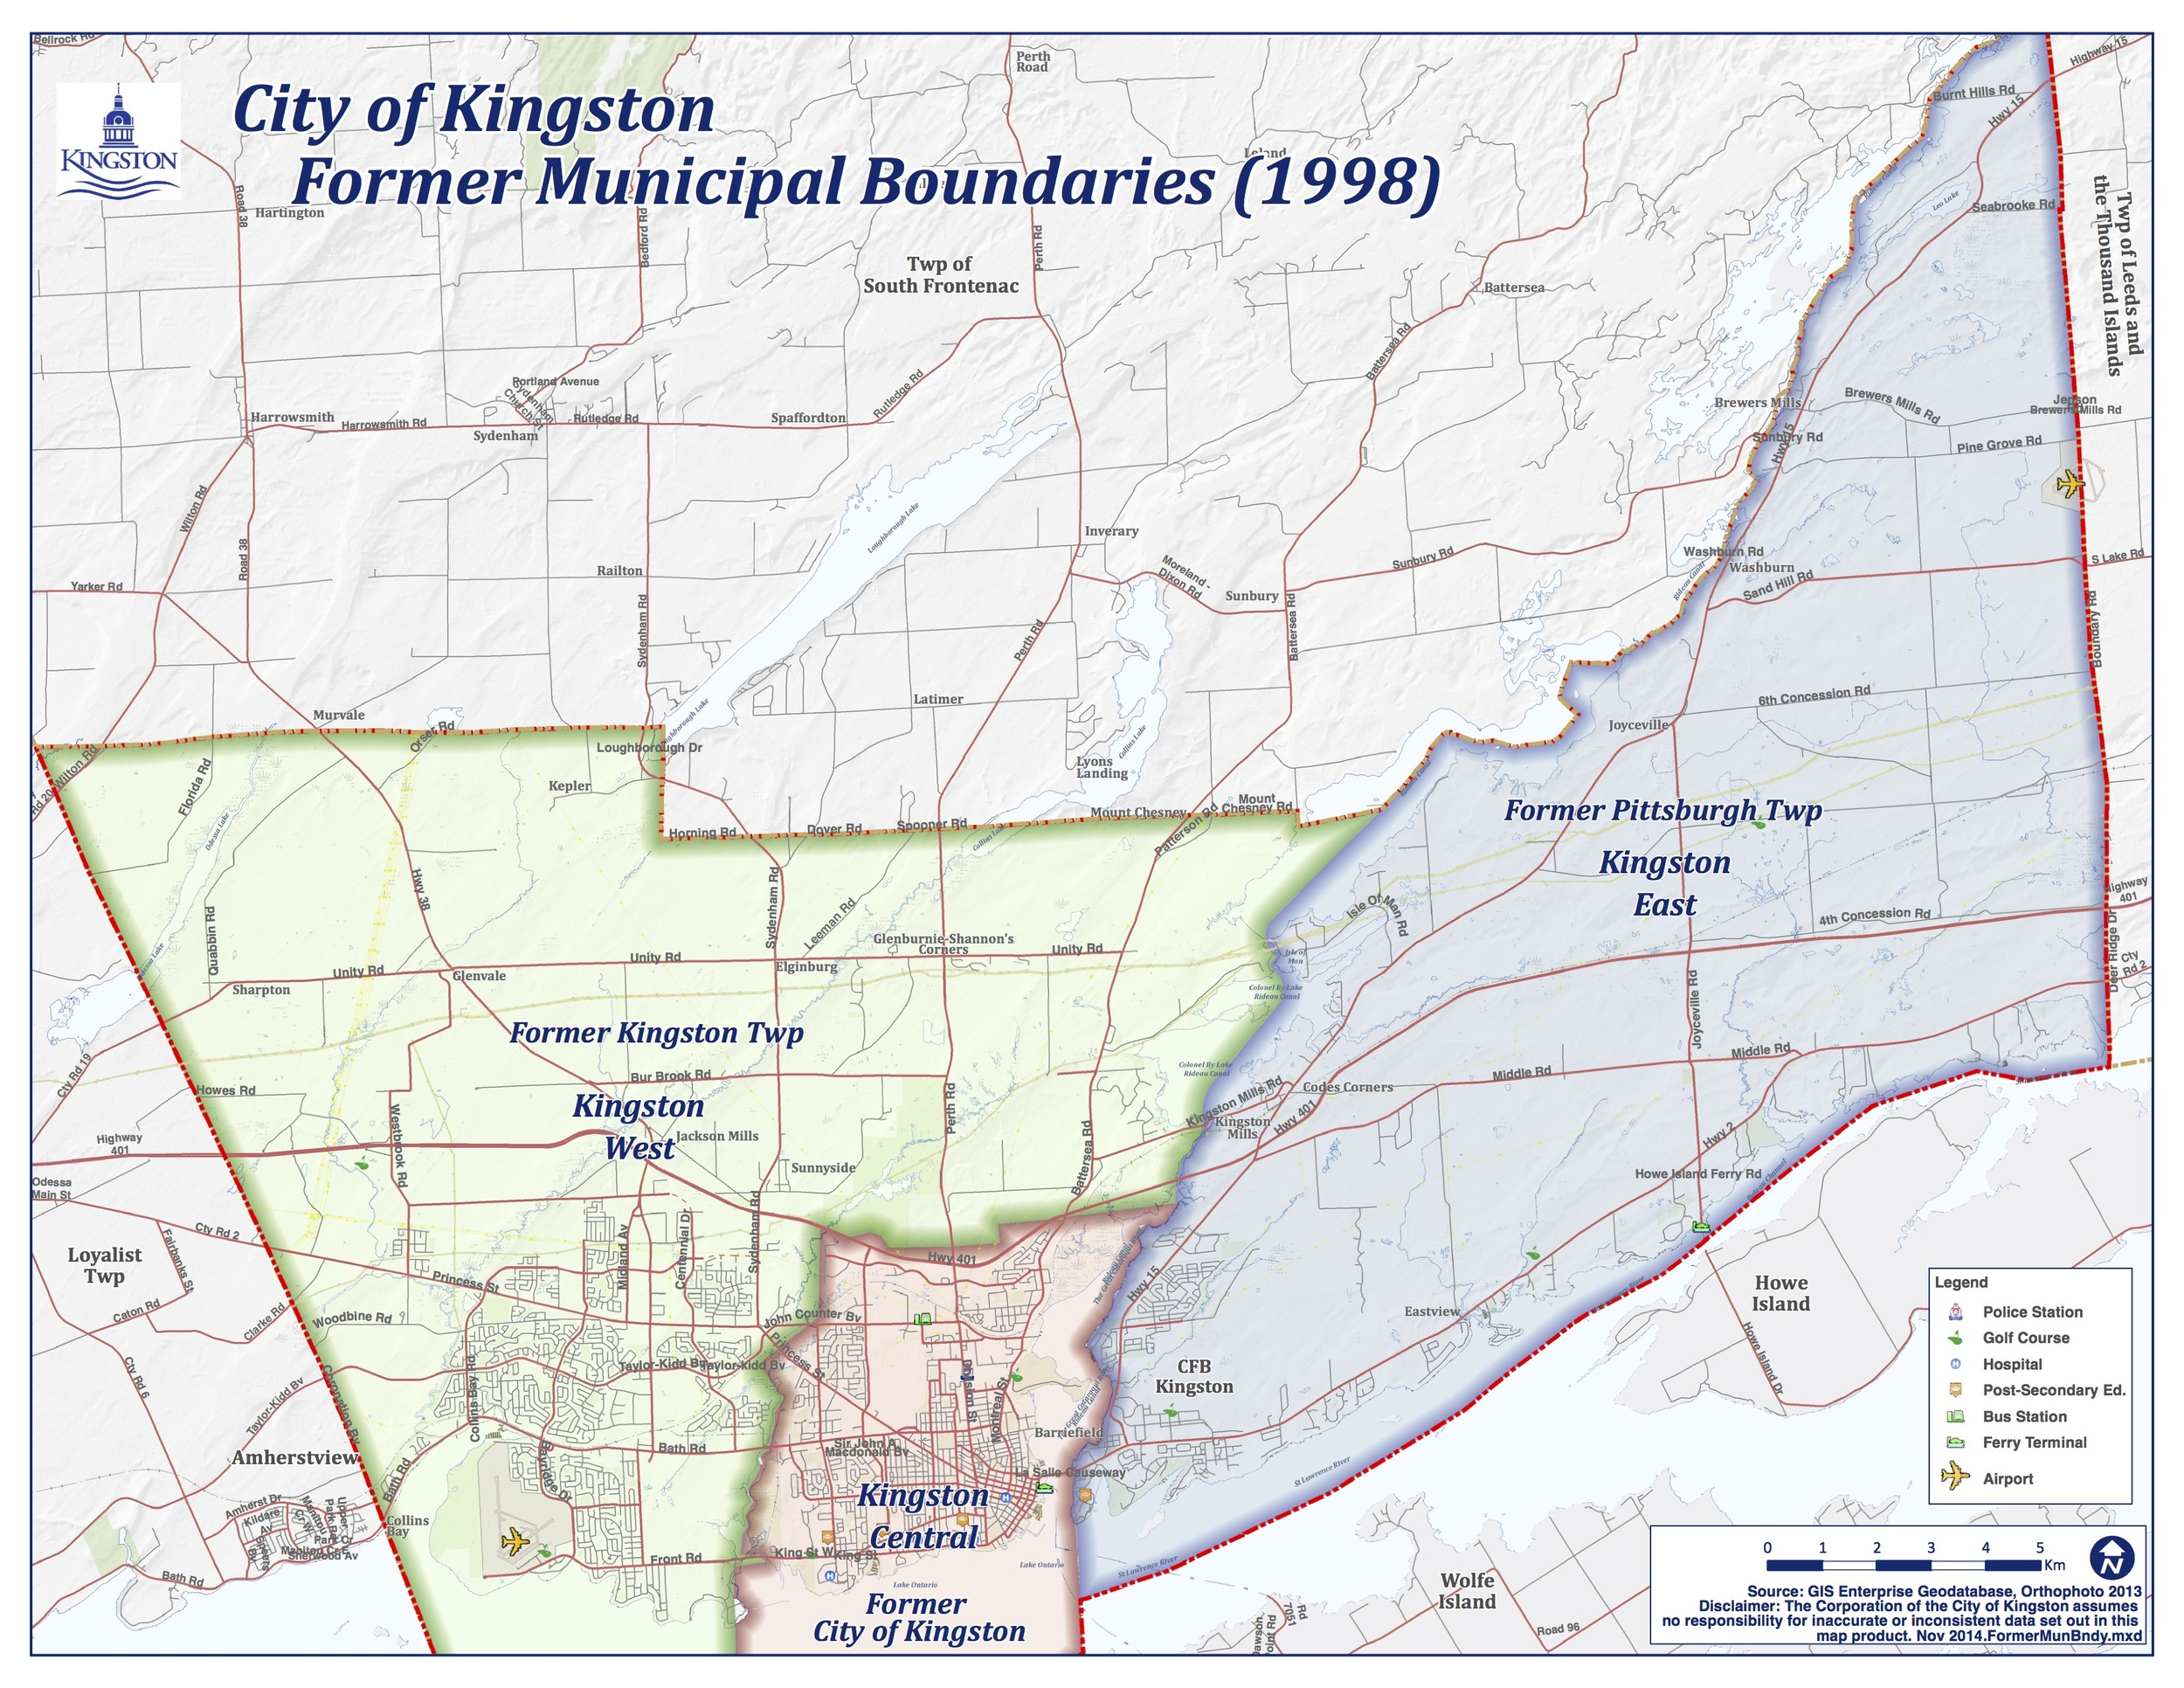 City of Kingston Former Municipal Boundaries. Courtesy of City of Kingston (www.cityofkingston.ca)